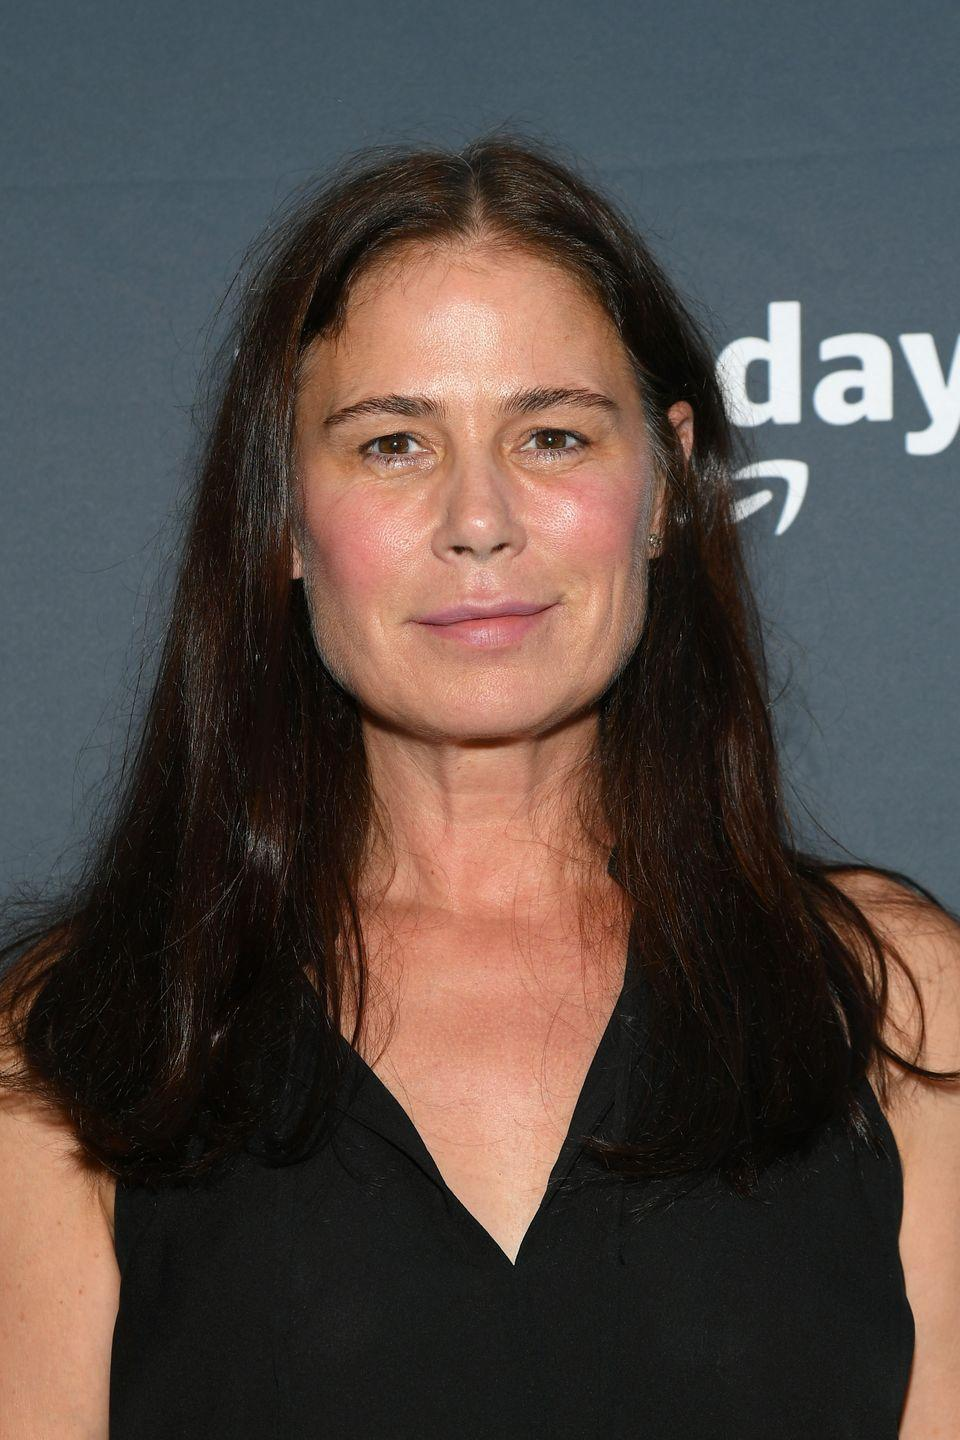 """<p><em>The Affair </em>actress underwent treatment for breast cancer in 2010. Later that year, in an iconic moment on the<em> <a href=""""https://www.youtube.com/watch?v=EyoNayI4Lig"""" rel=""""nofollow noopener"""" target=""""_blank"""" data-ylk=""""slk:The Ellen Degeneres Show"""" class=""""link rapid-noclick-resp"""">The Ellen Degeneres Show</a></em>, she recalled a funny moment she experienced when deciding on the type of implants for her reconstruction. """"These two women that I never met before came into my doctor's office and took off their tops, and I got to touch them and decide which kind of implant I wanted,"""" she said.</p>"""